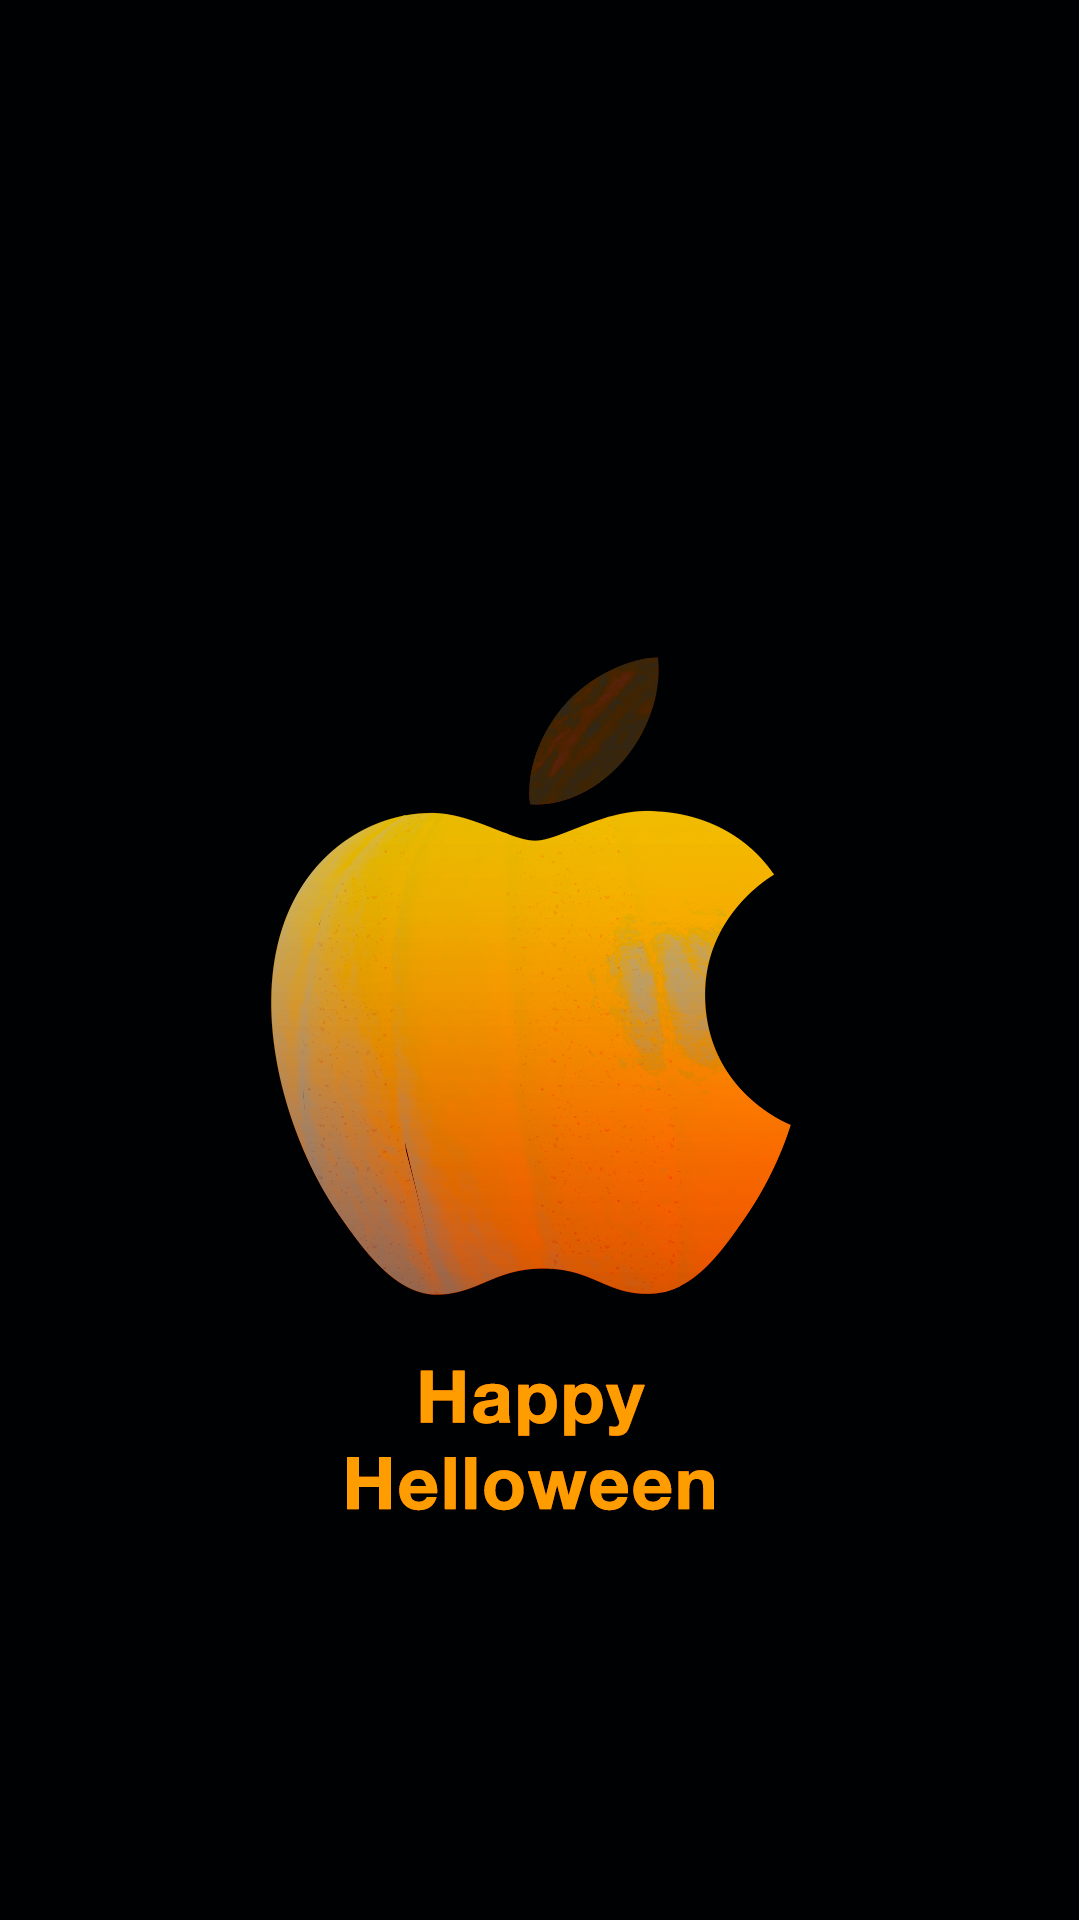 Most Inspiring Wallpaper Macbook Halloween - 50e69e455b84ac1841447c4c6e9e81d9  You Should Have_775551.png